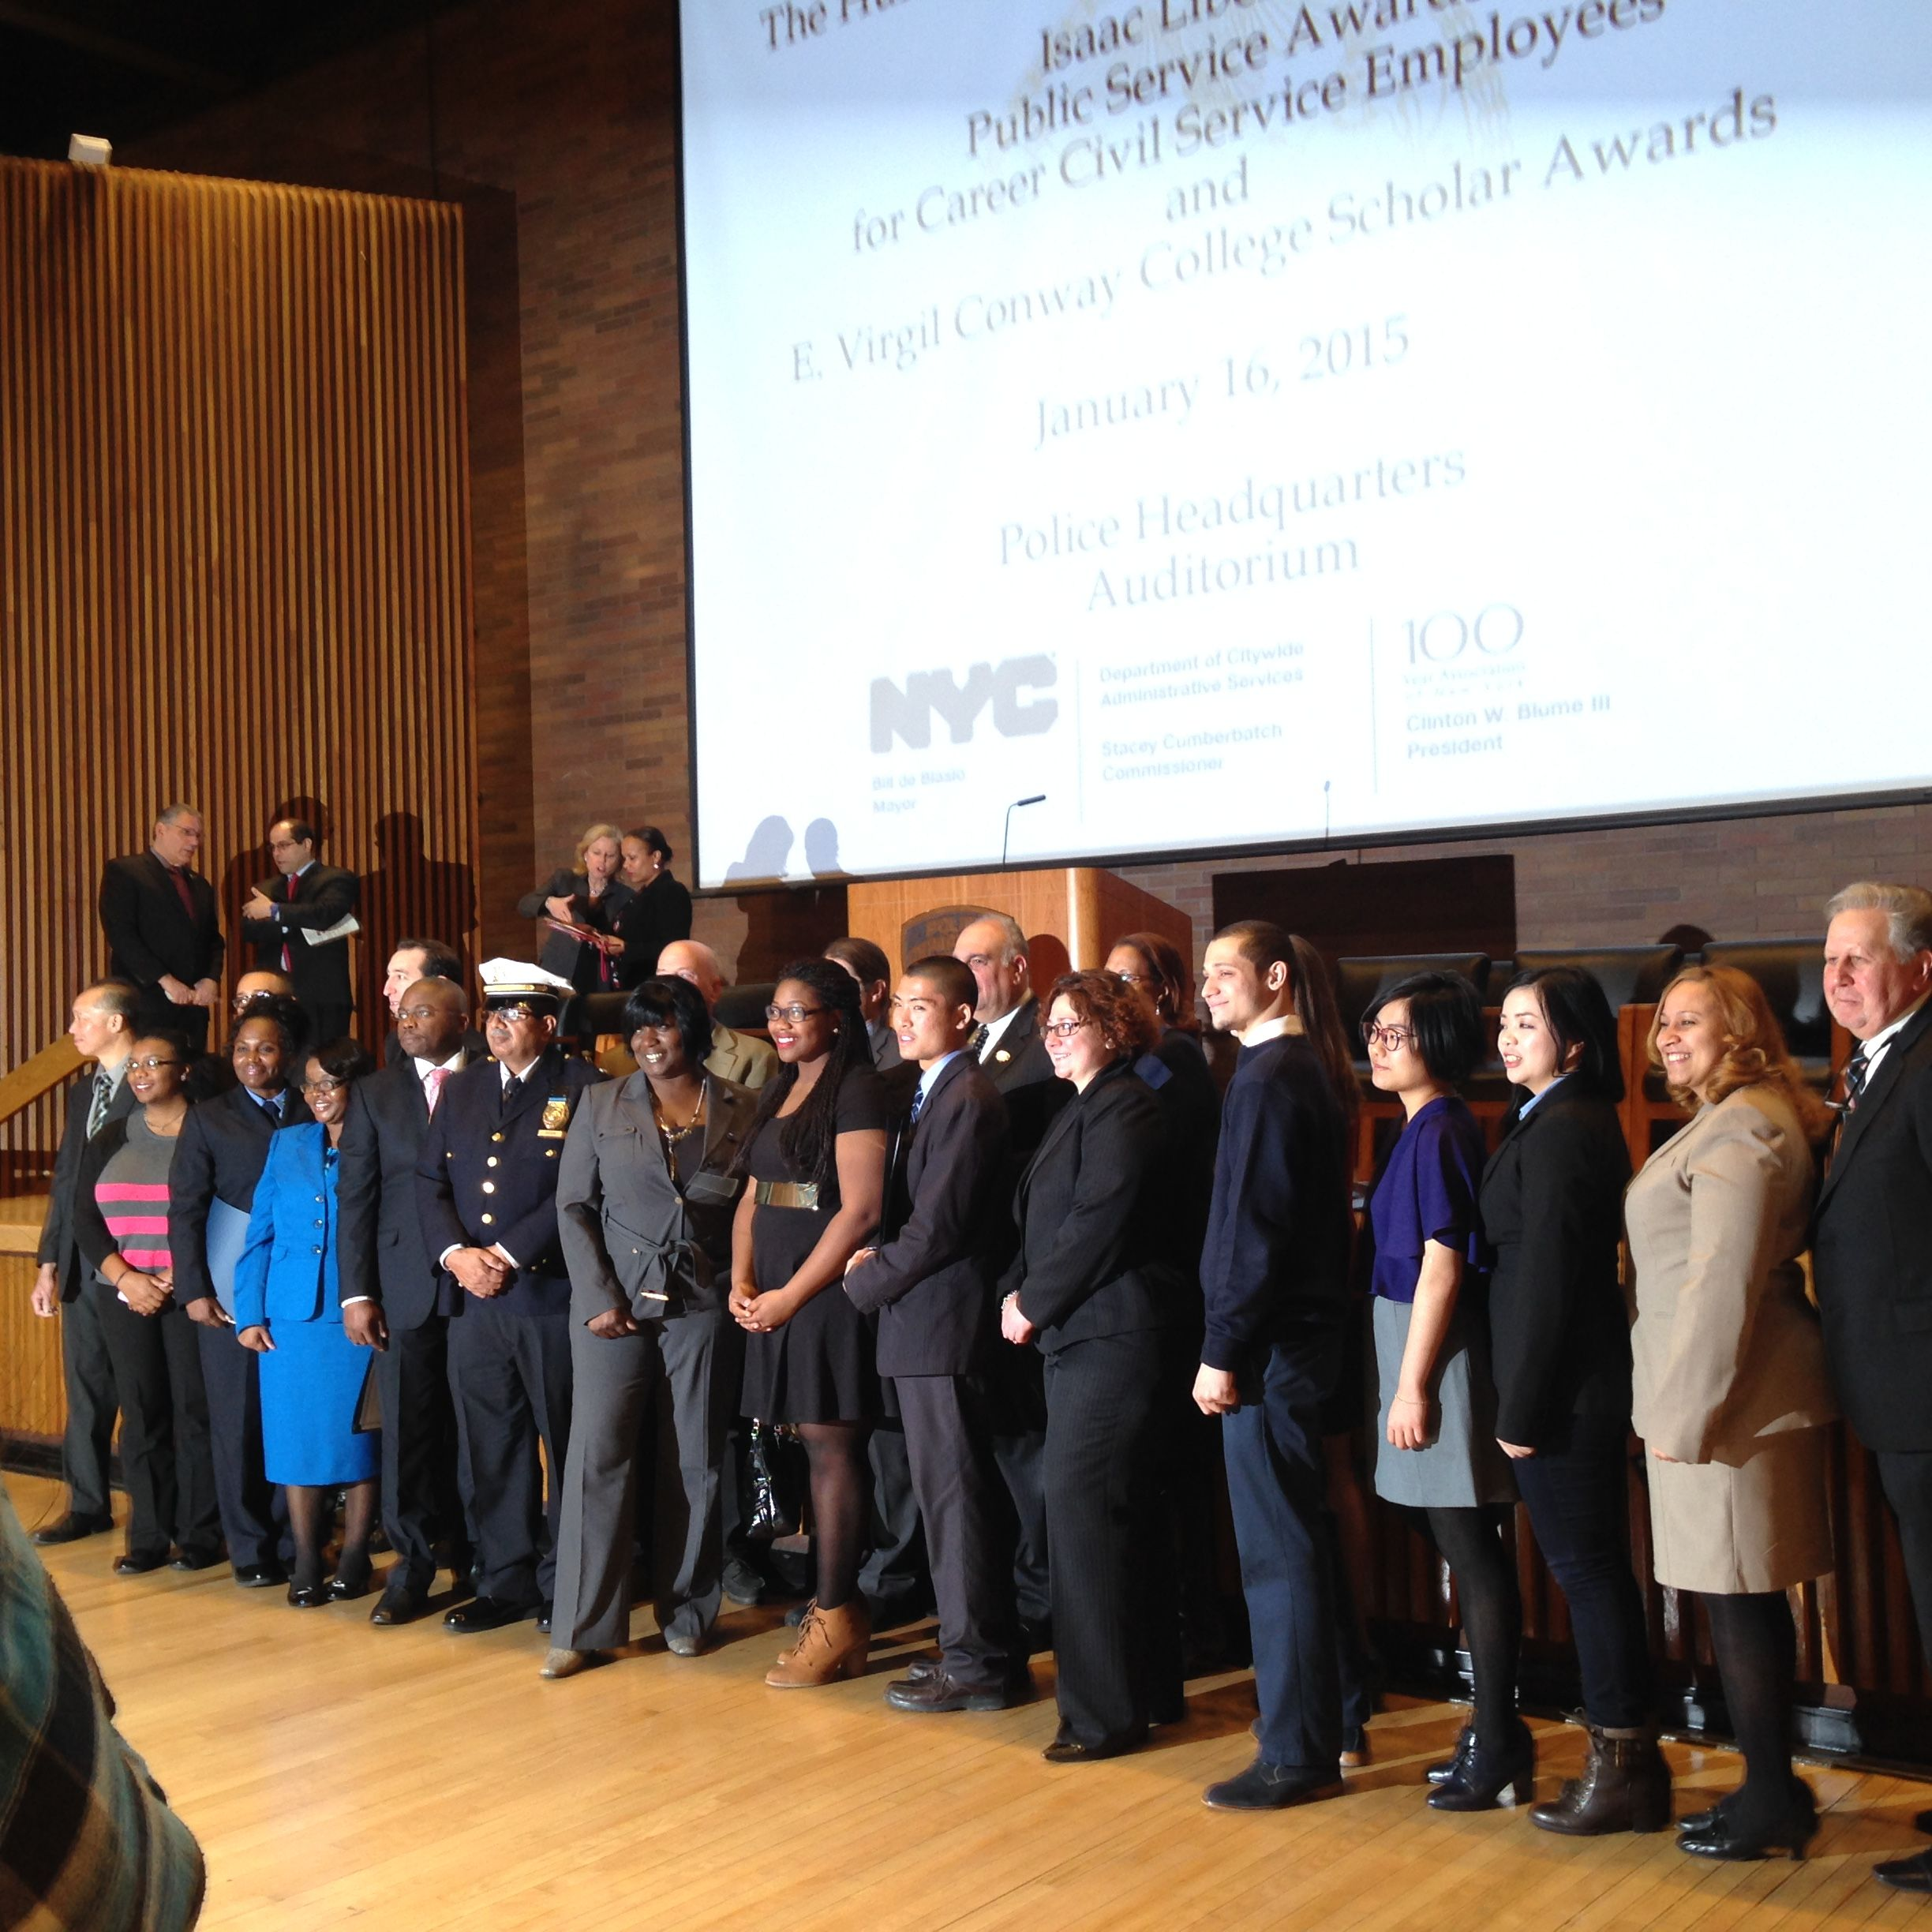 2014 E. Virgil College Scholarship and Issac Liberman Public Service Award Ceremony at One Police Plaza.- January 16, 2015